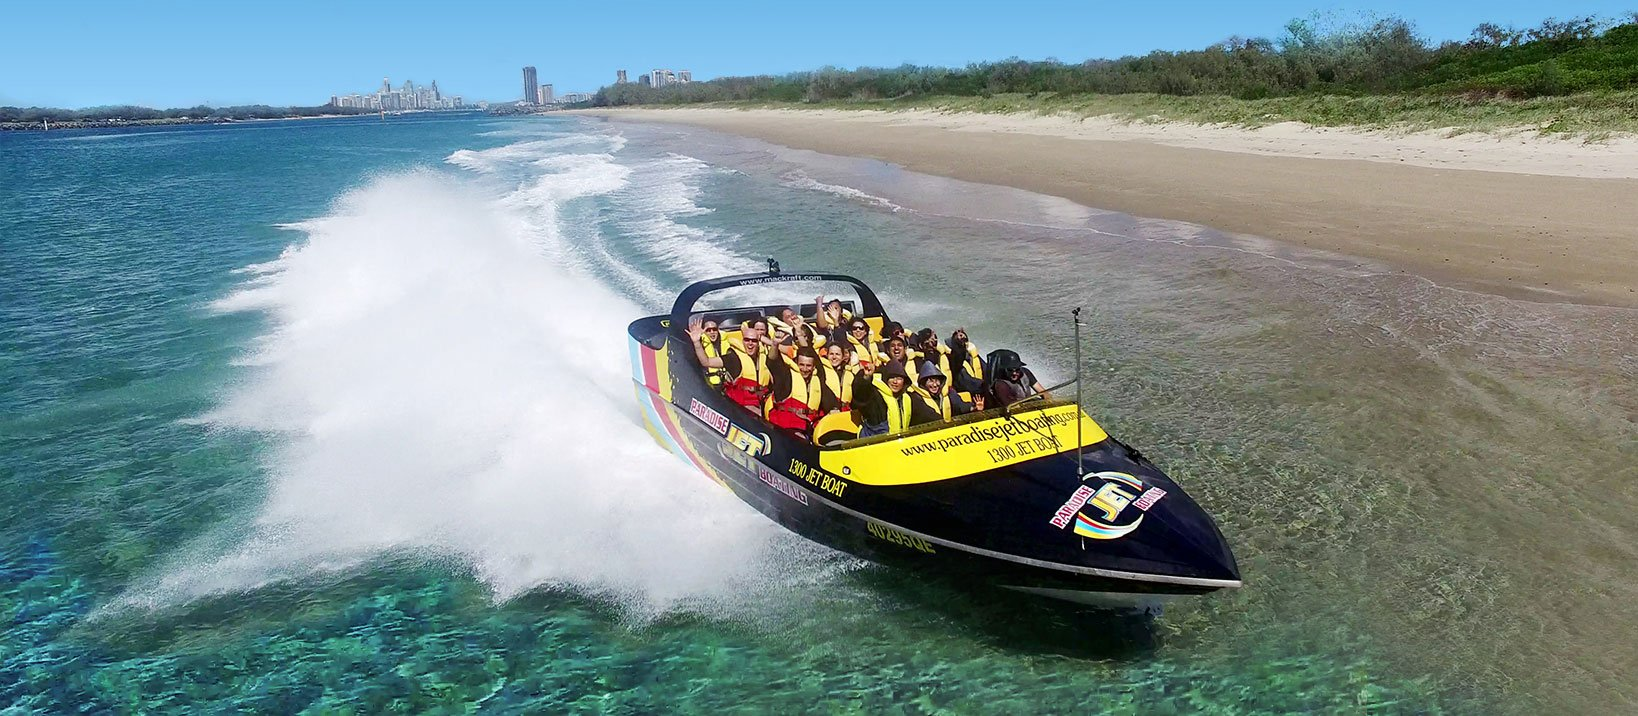 Jetboat cruising past beach